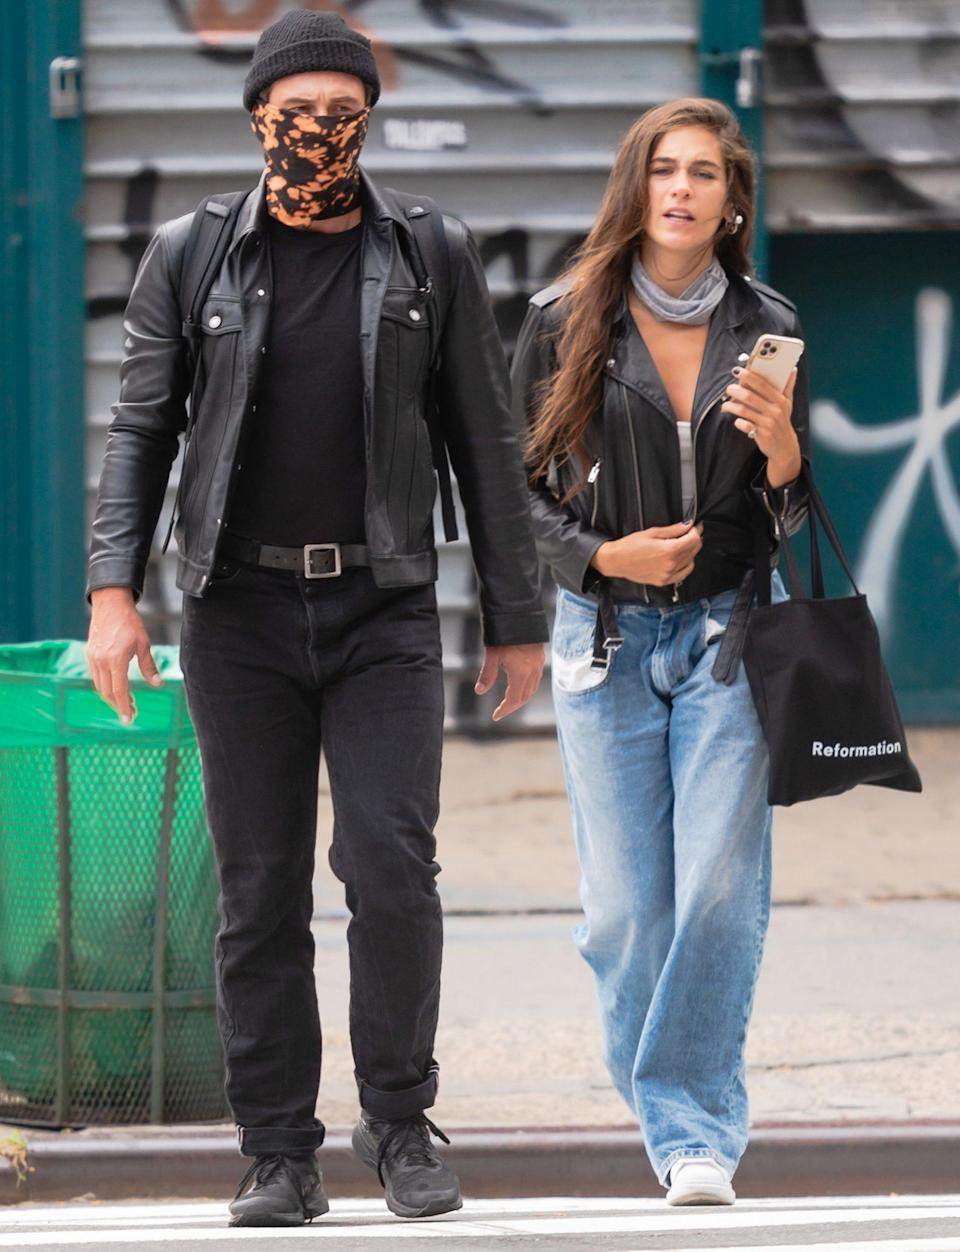 <p>James Franco and Isabel Pakzad head out to enjoy a spa day on Saturday in N.Y.C.</p>